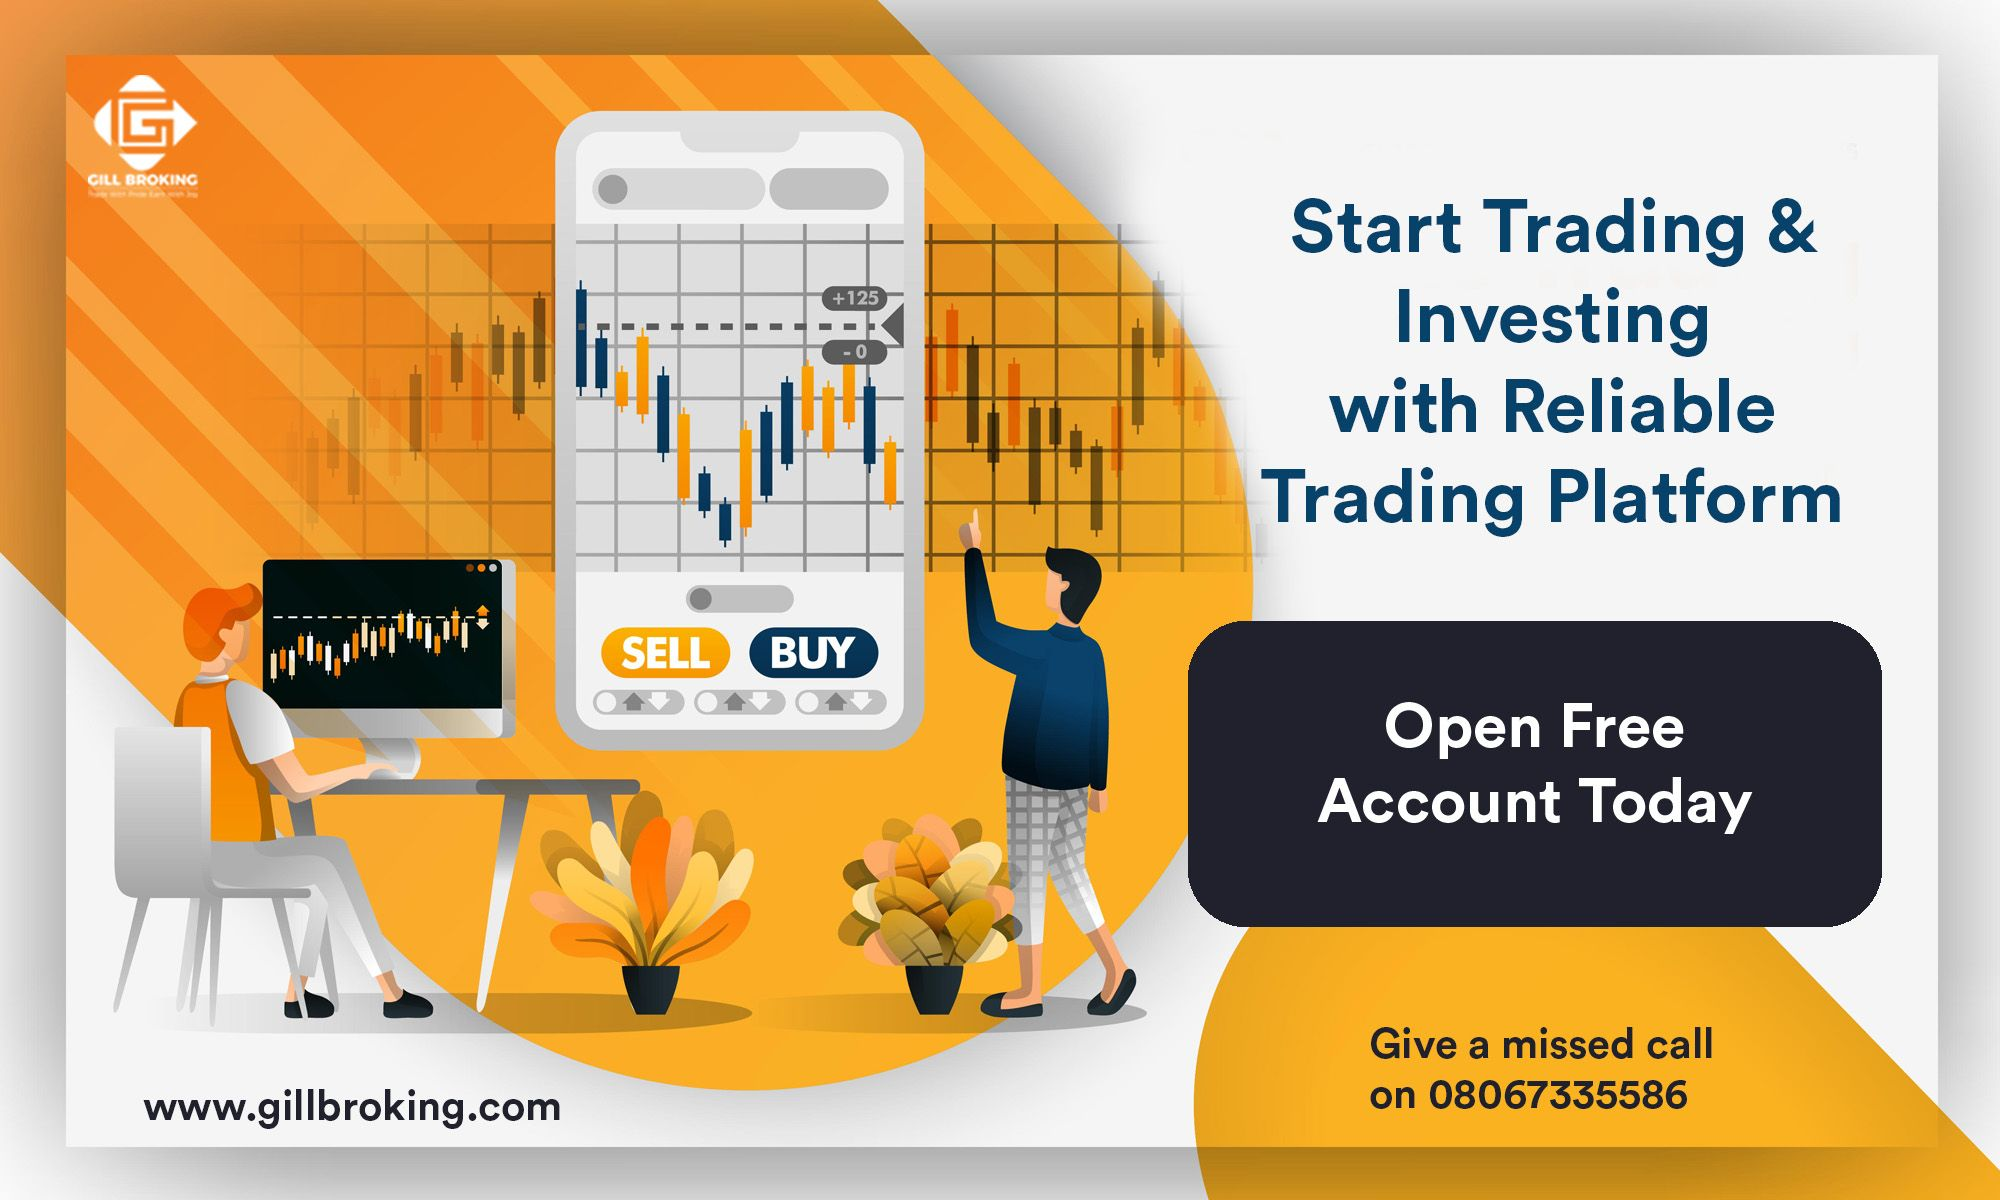 Free Trading Account Gill Broking Commodity trading